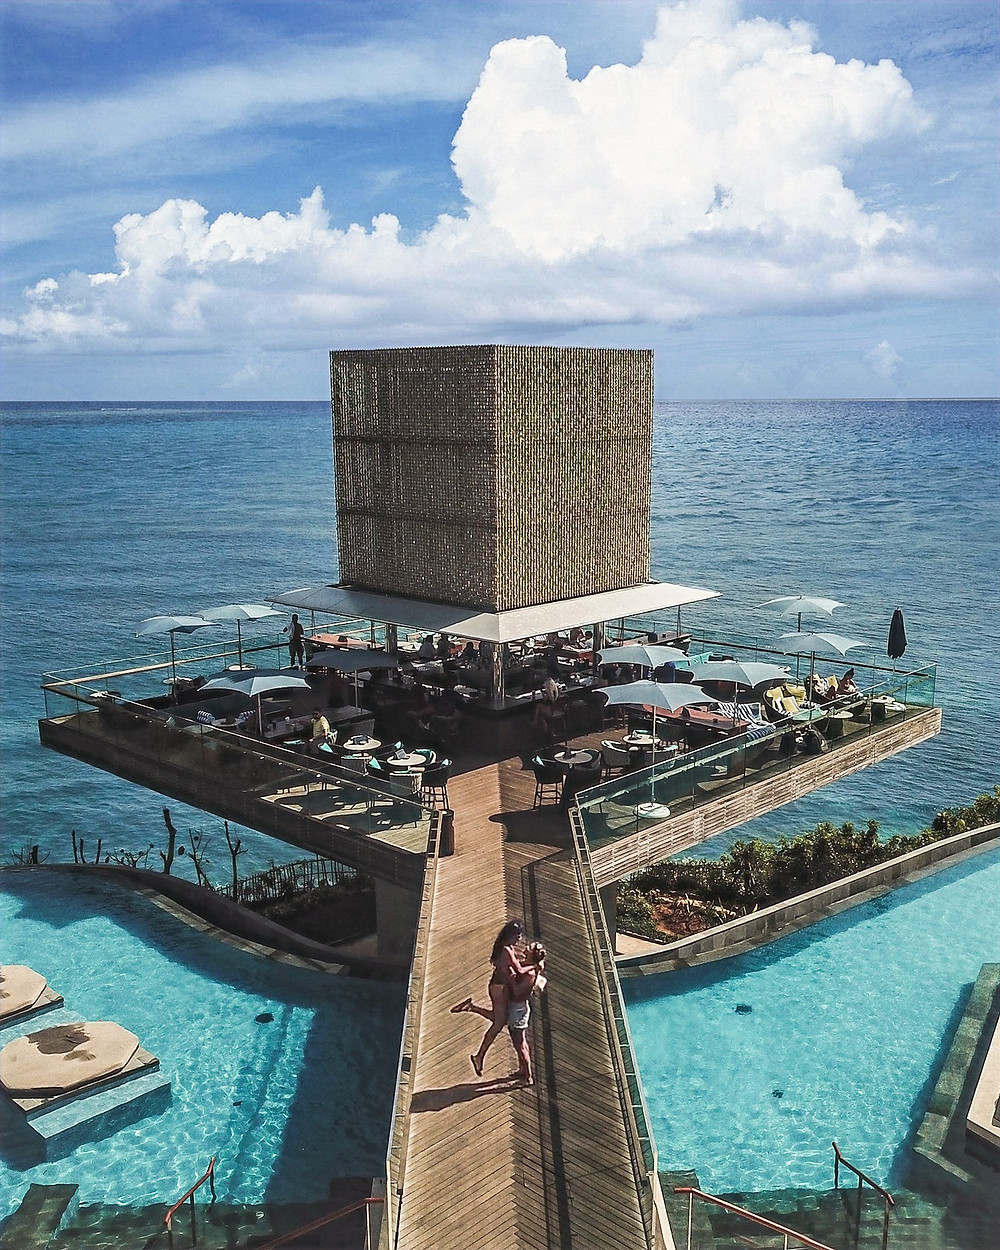 Omnia Dayclub in Uluwatu, Bali | On Airplane Mode